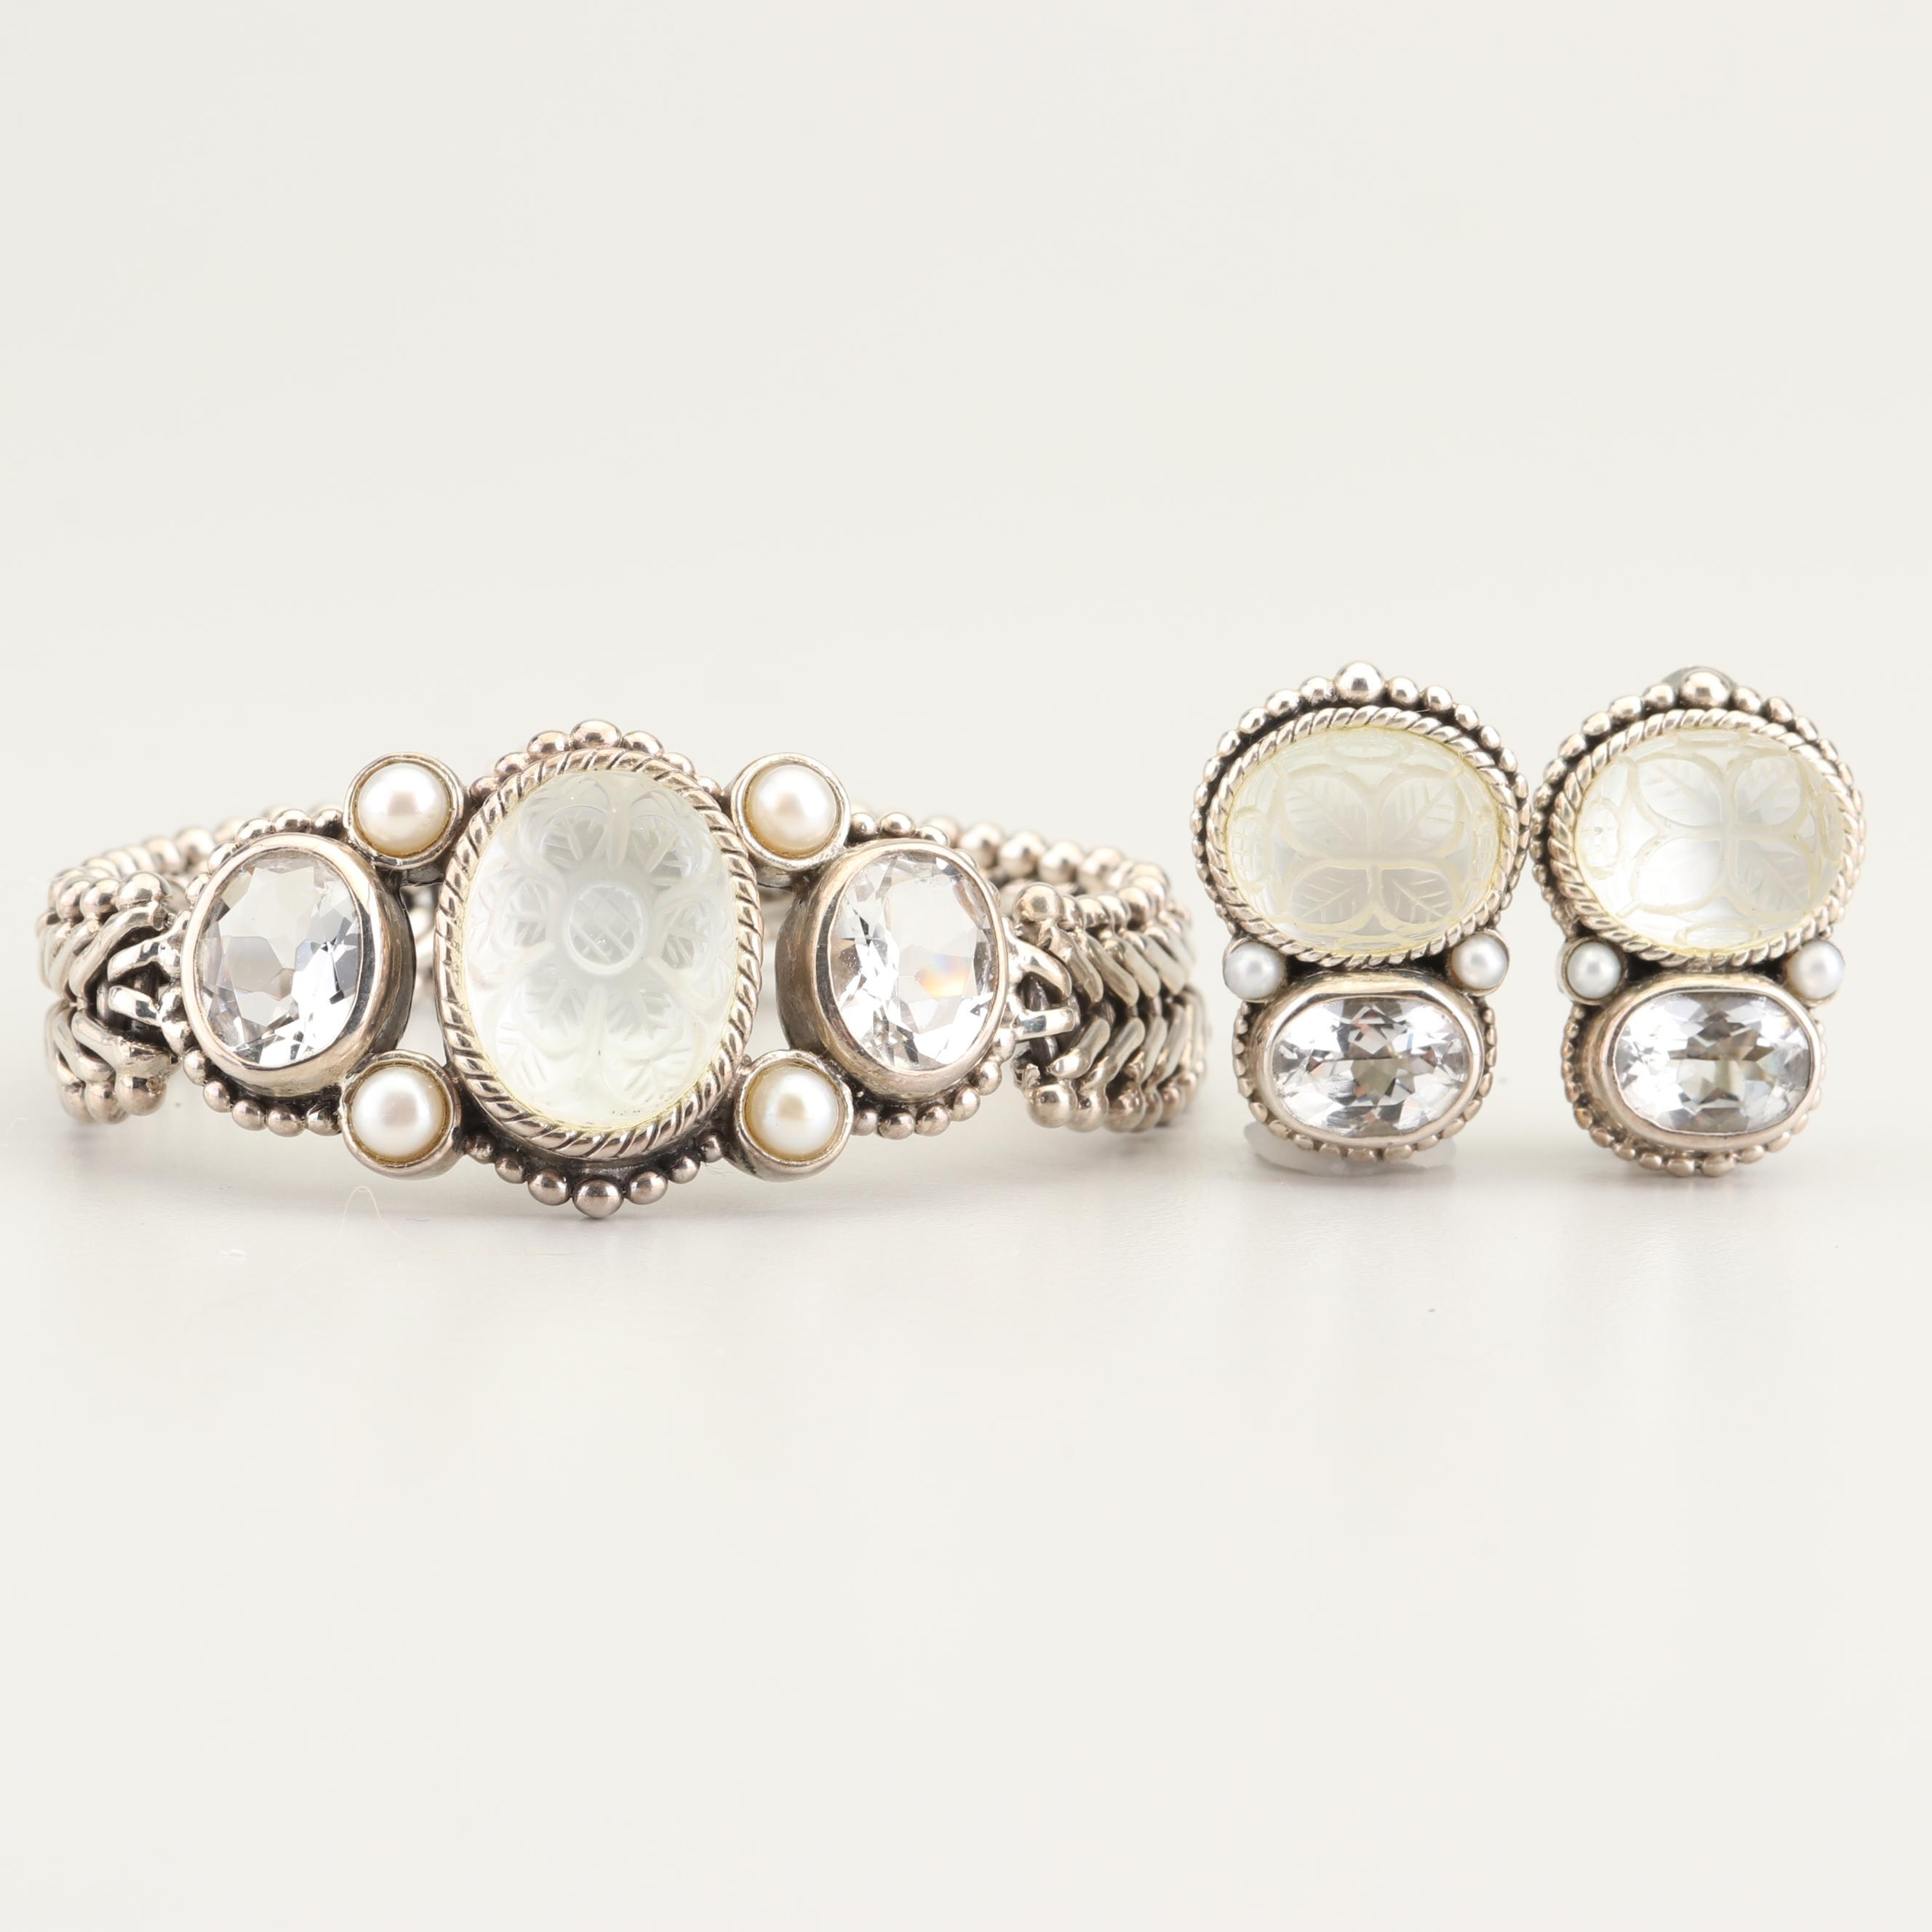 Stephen Dweck Sterling Silver Quartz and Cultured Pearl Bracelet and Earring Set